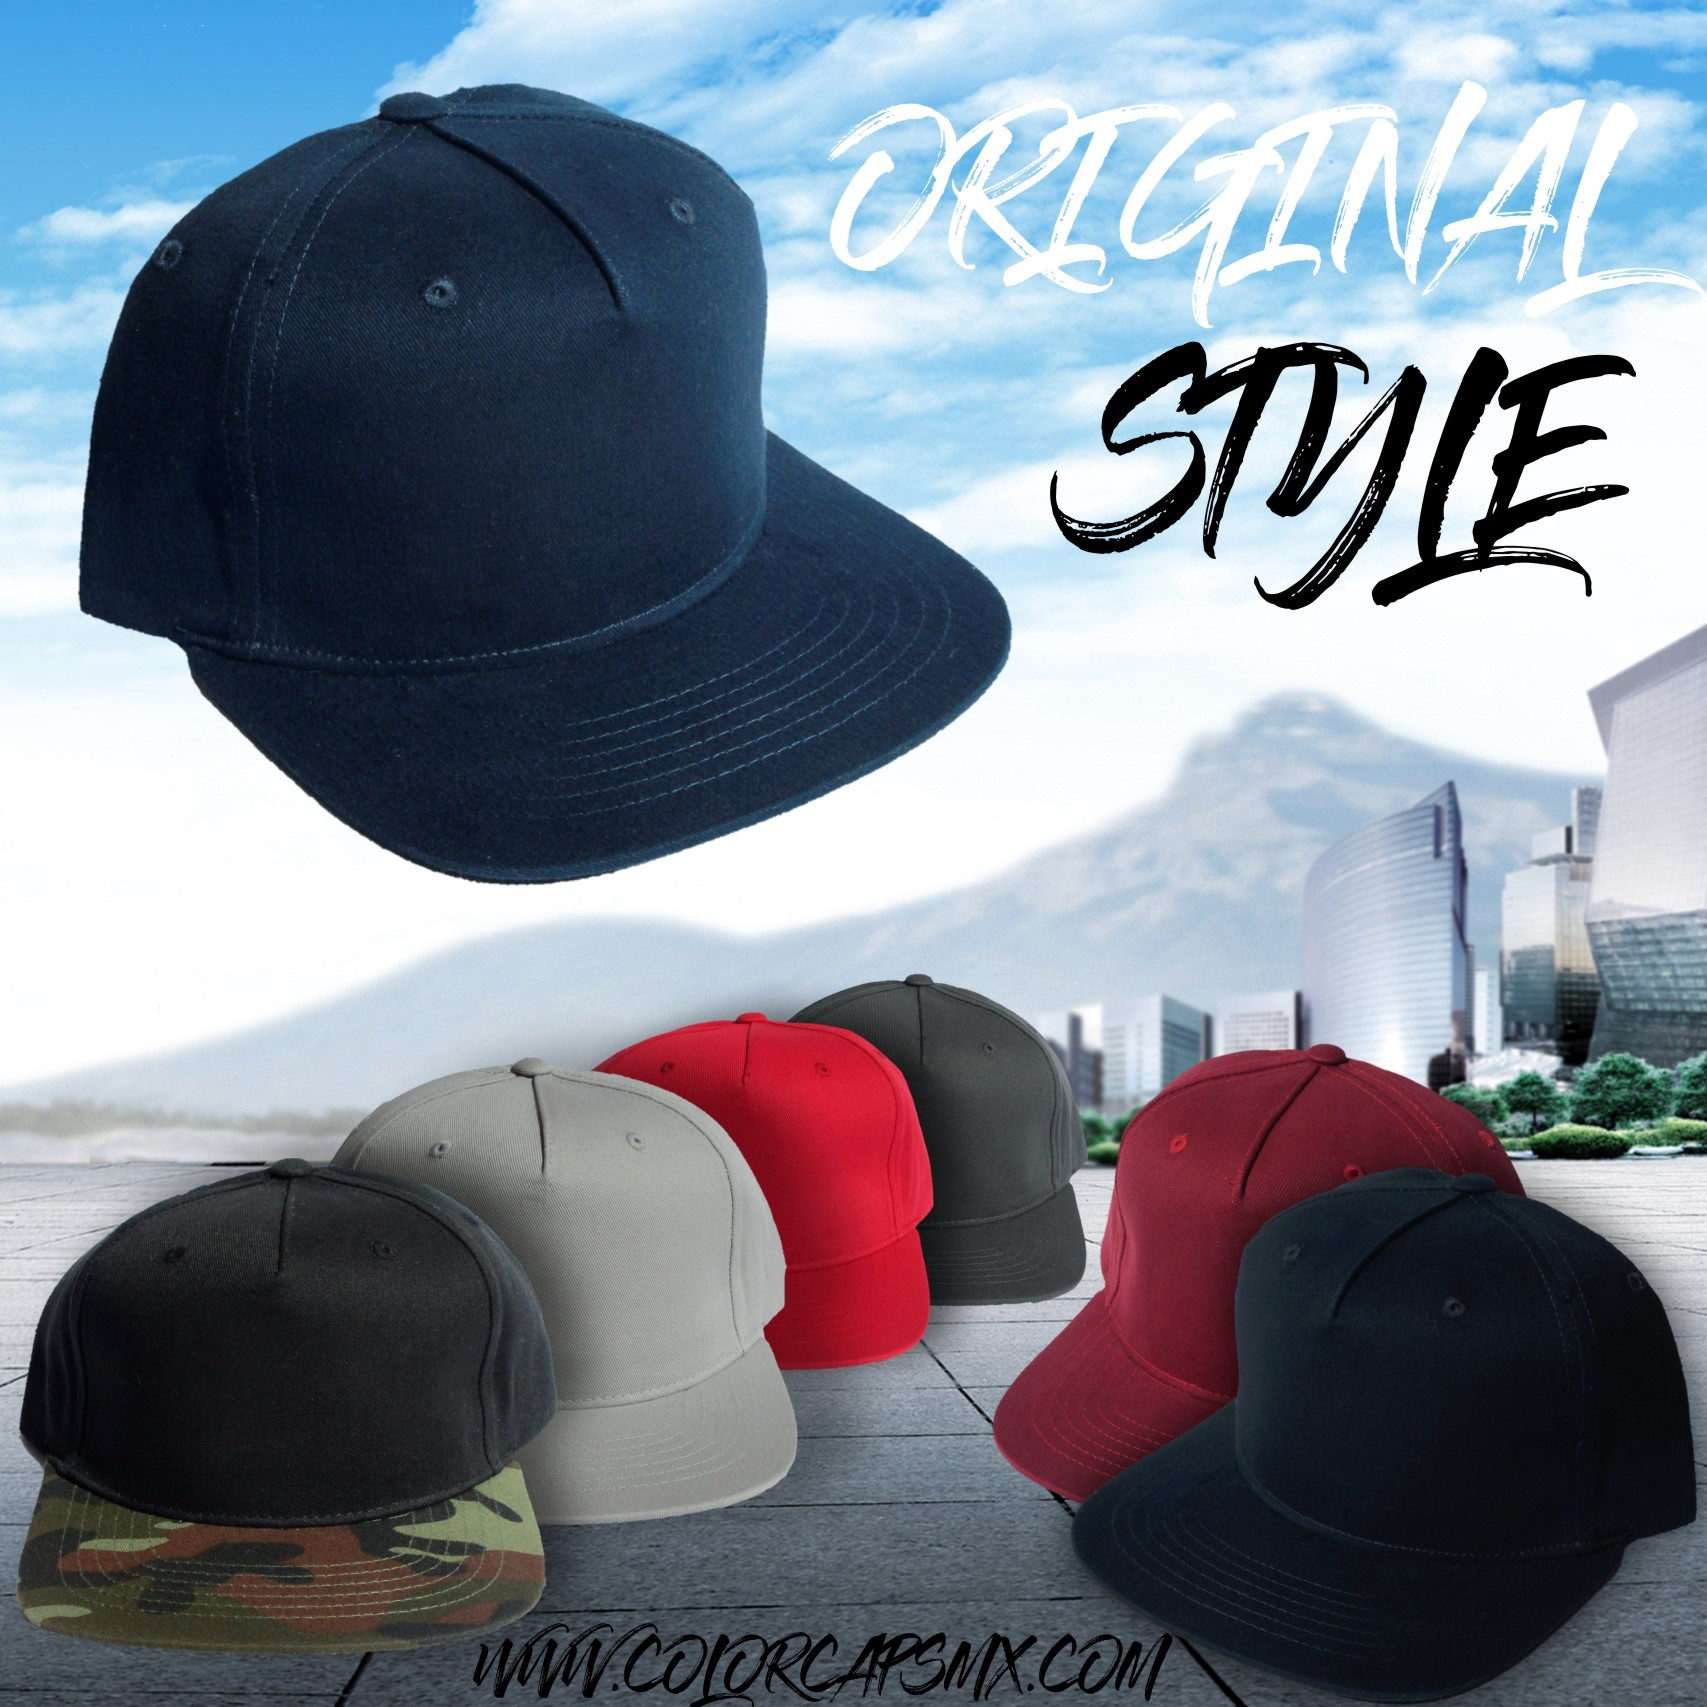 44ca2fc86ed87 5 PANEL SNAPBACK HIGH QUALITY 3.jpg ...